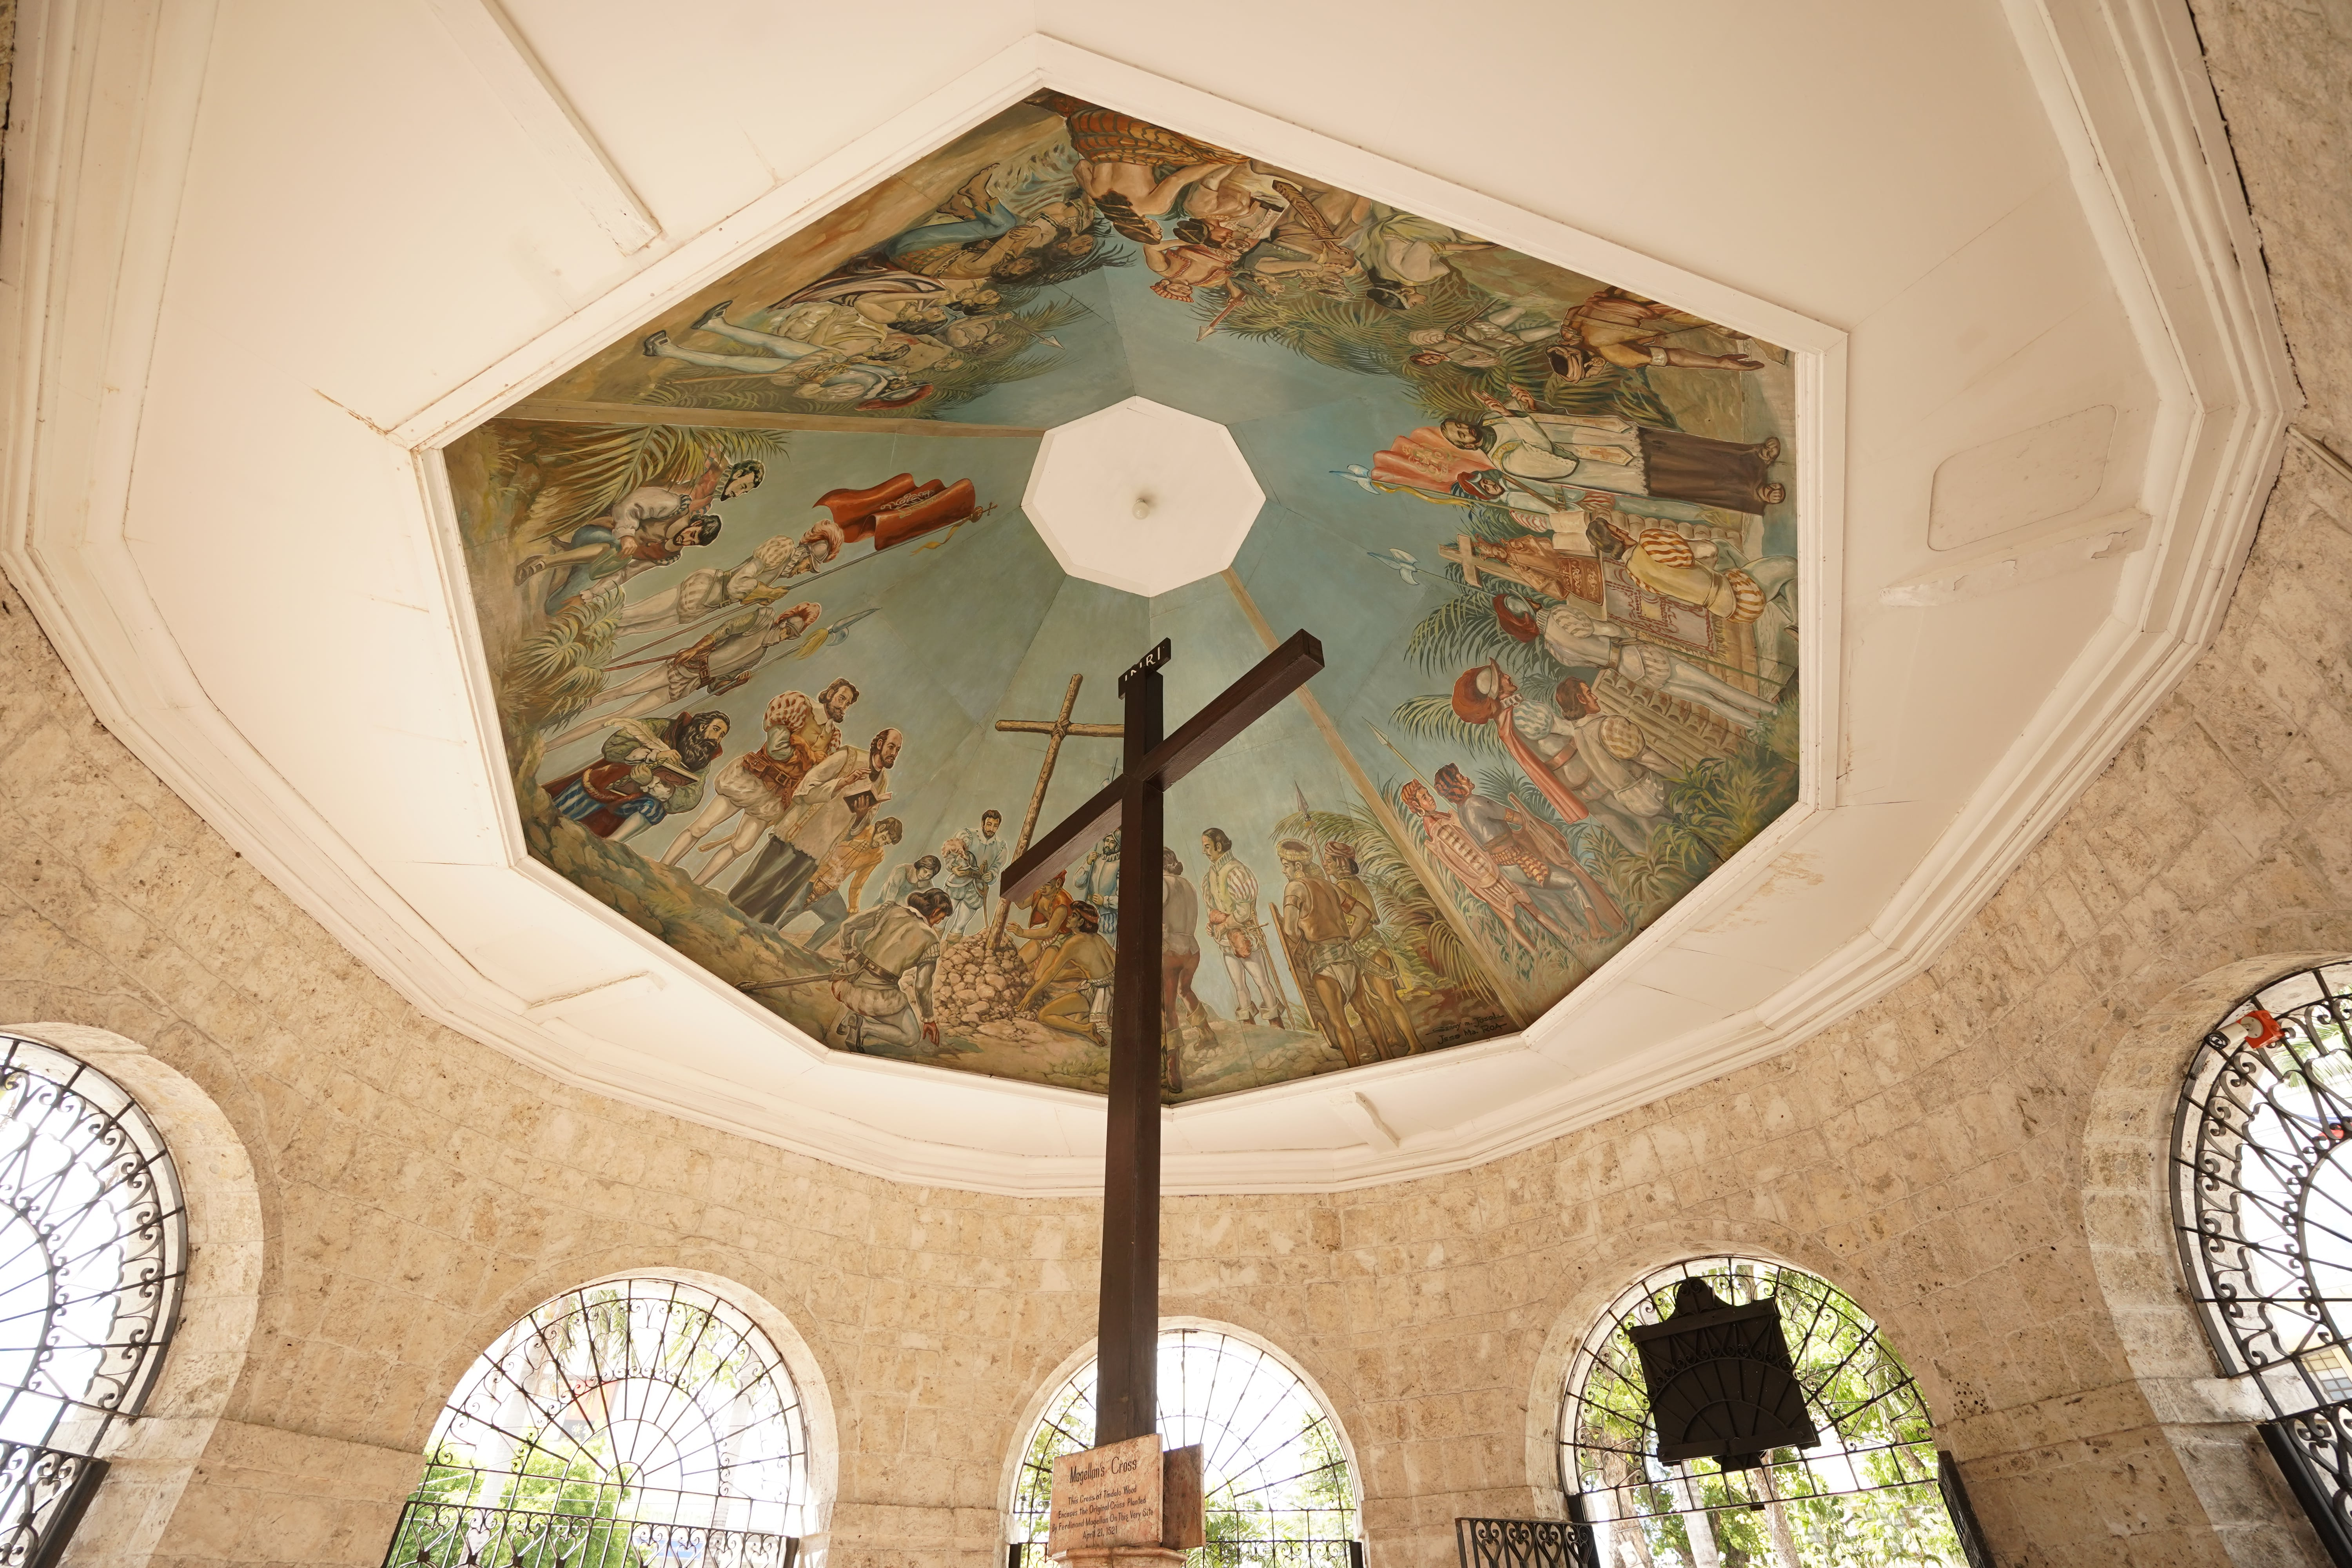 Depiction of history at the ceiling of Magellan's Cross